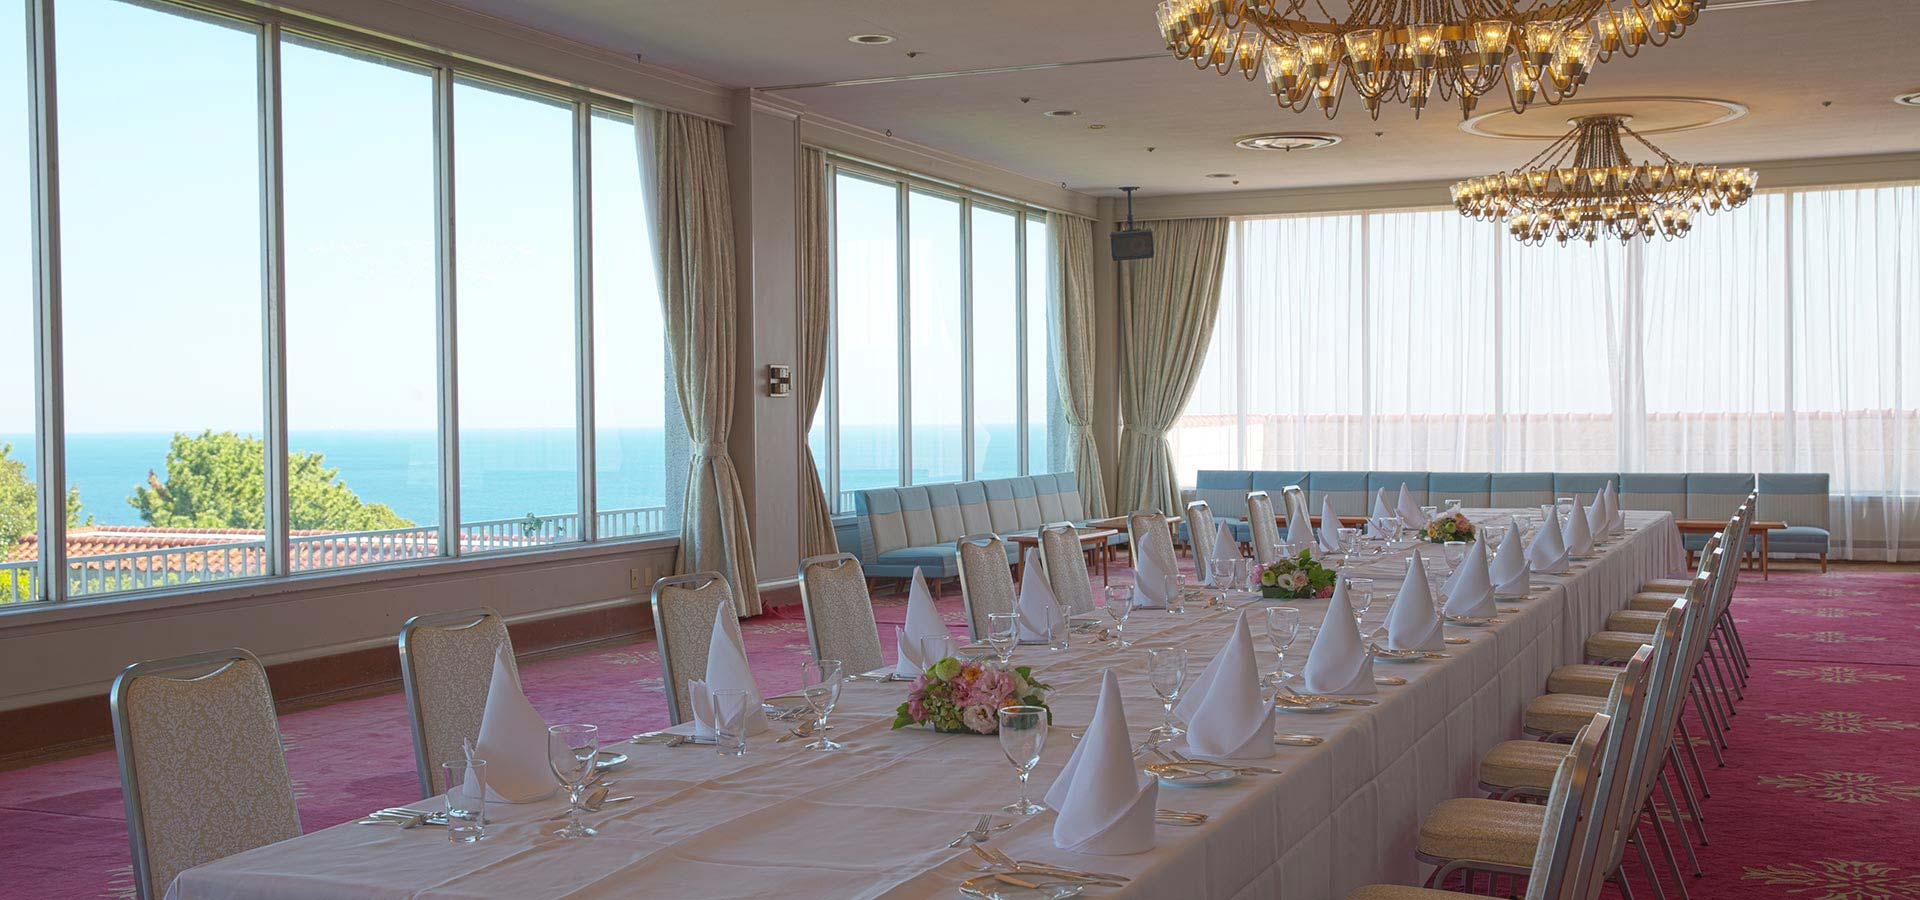 Western-style Banquet Hall